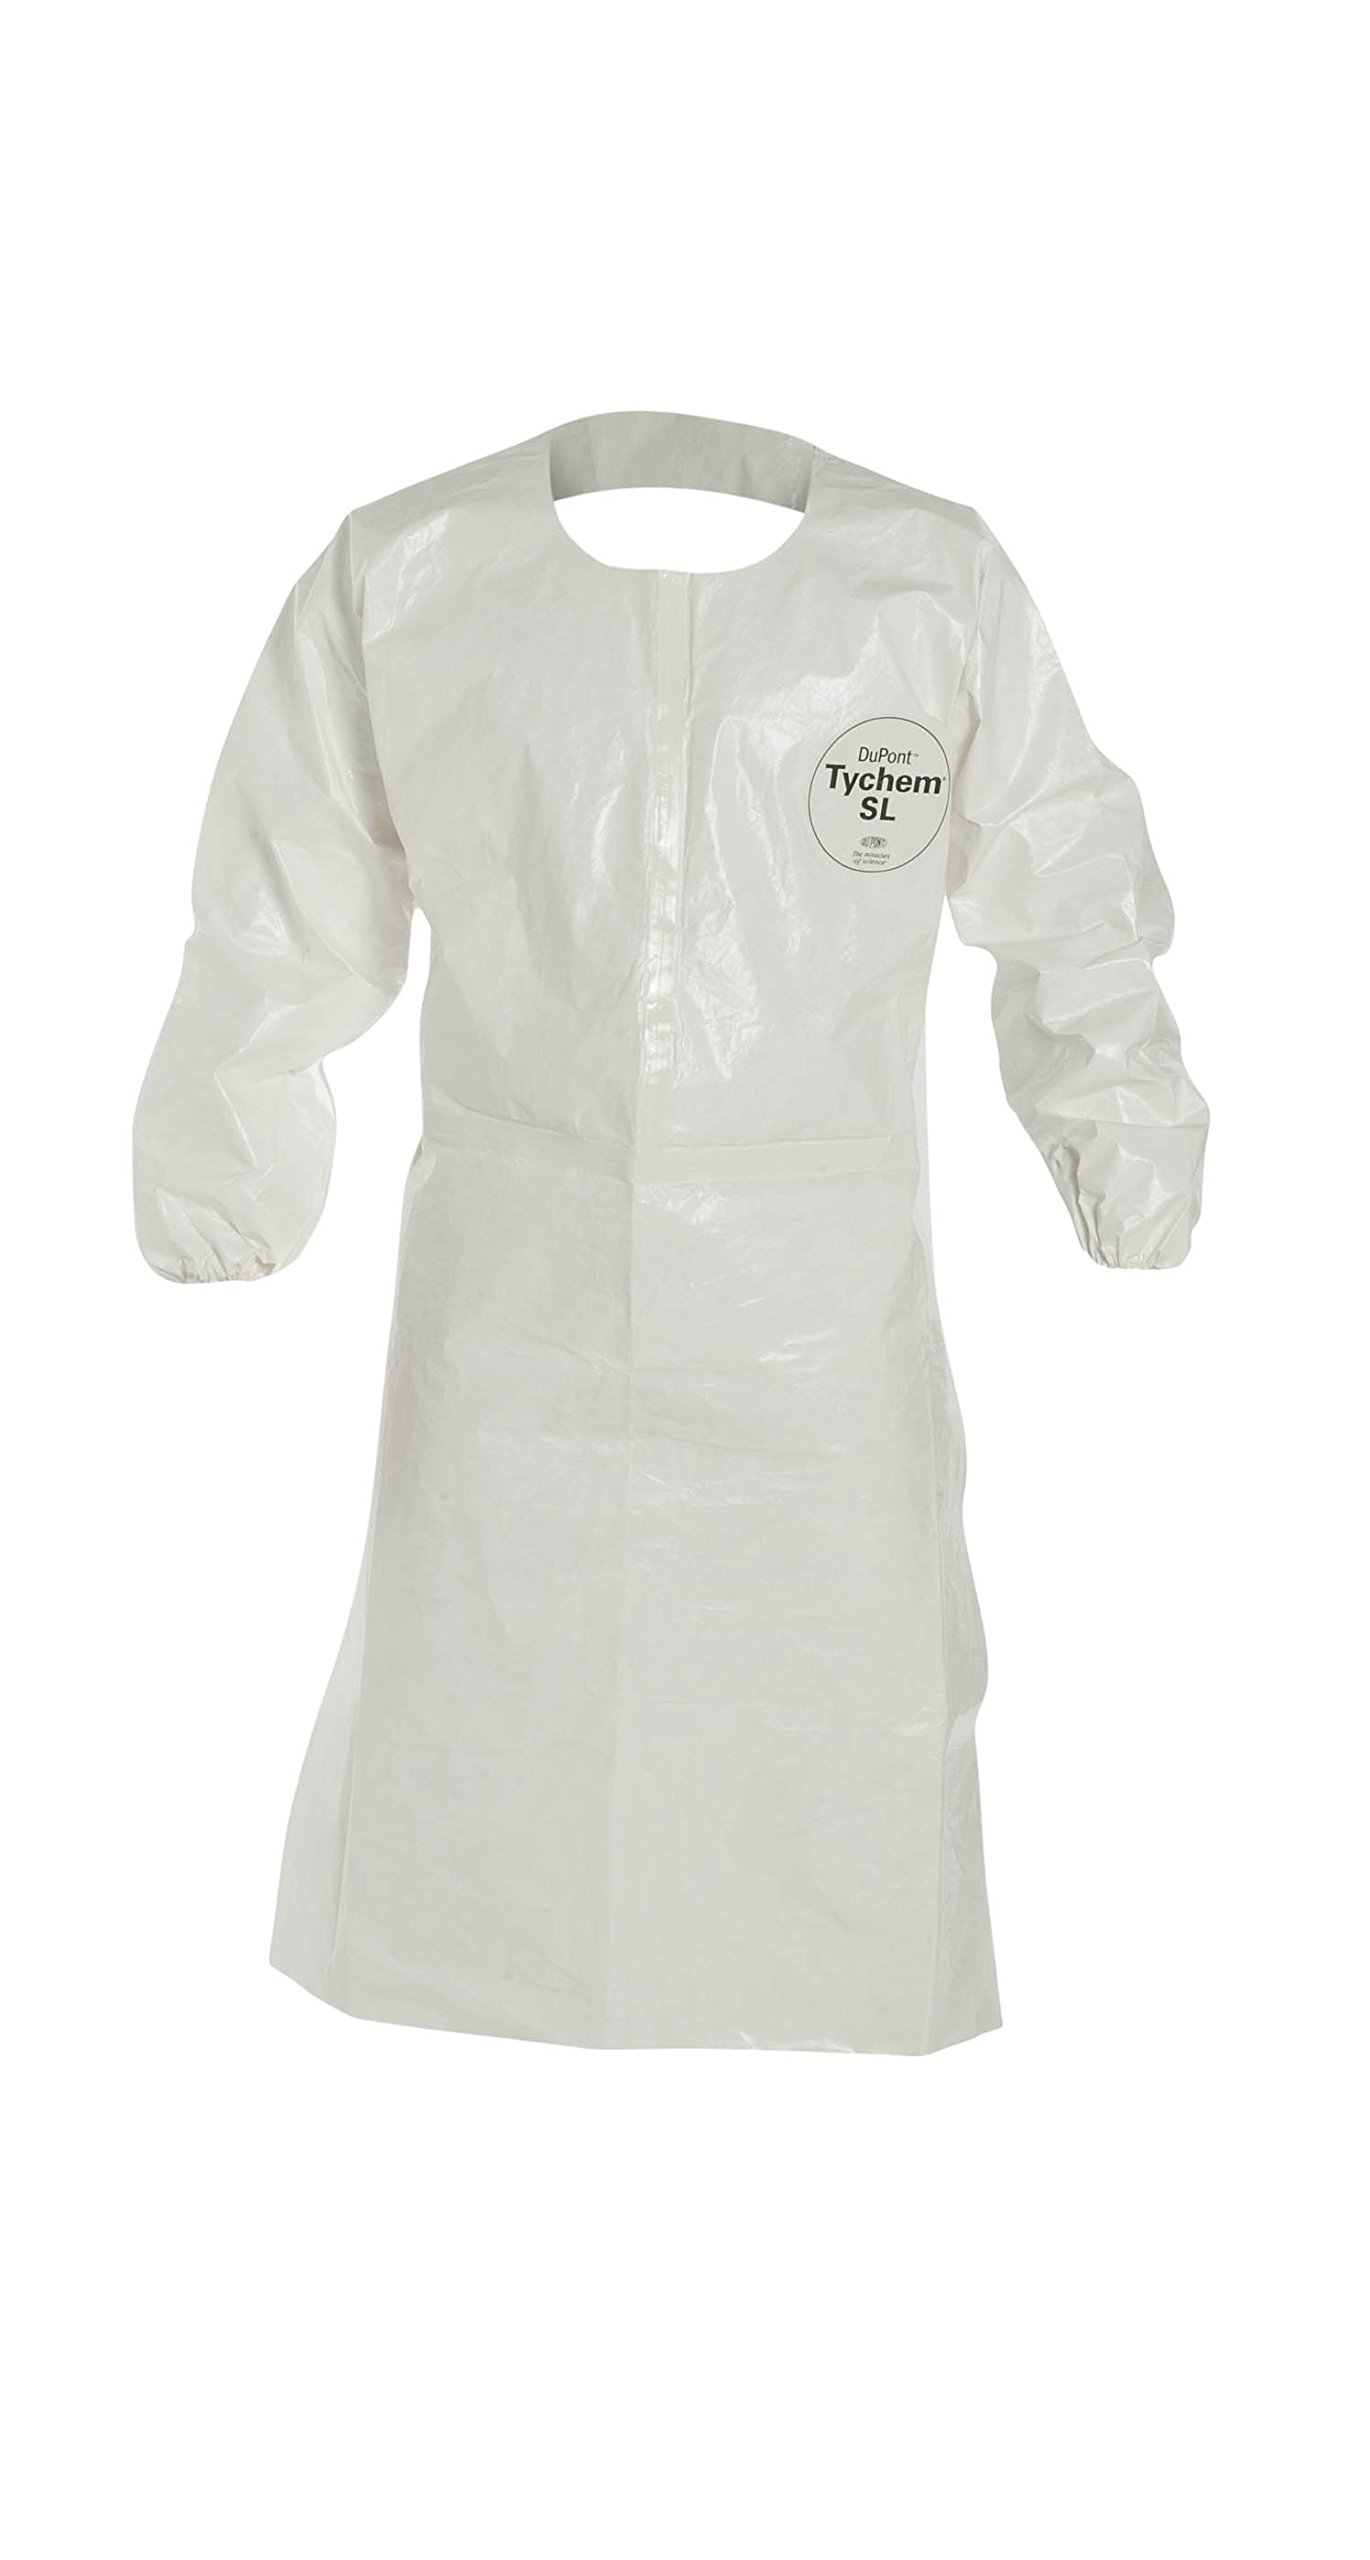 DuPont Tychem 4000 SL275T Disposable Sleeved Chemical Resistant Apron with Elastic Cuff and Taped Seams, White, X-Large (Pack of 25)